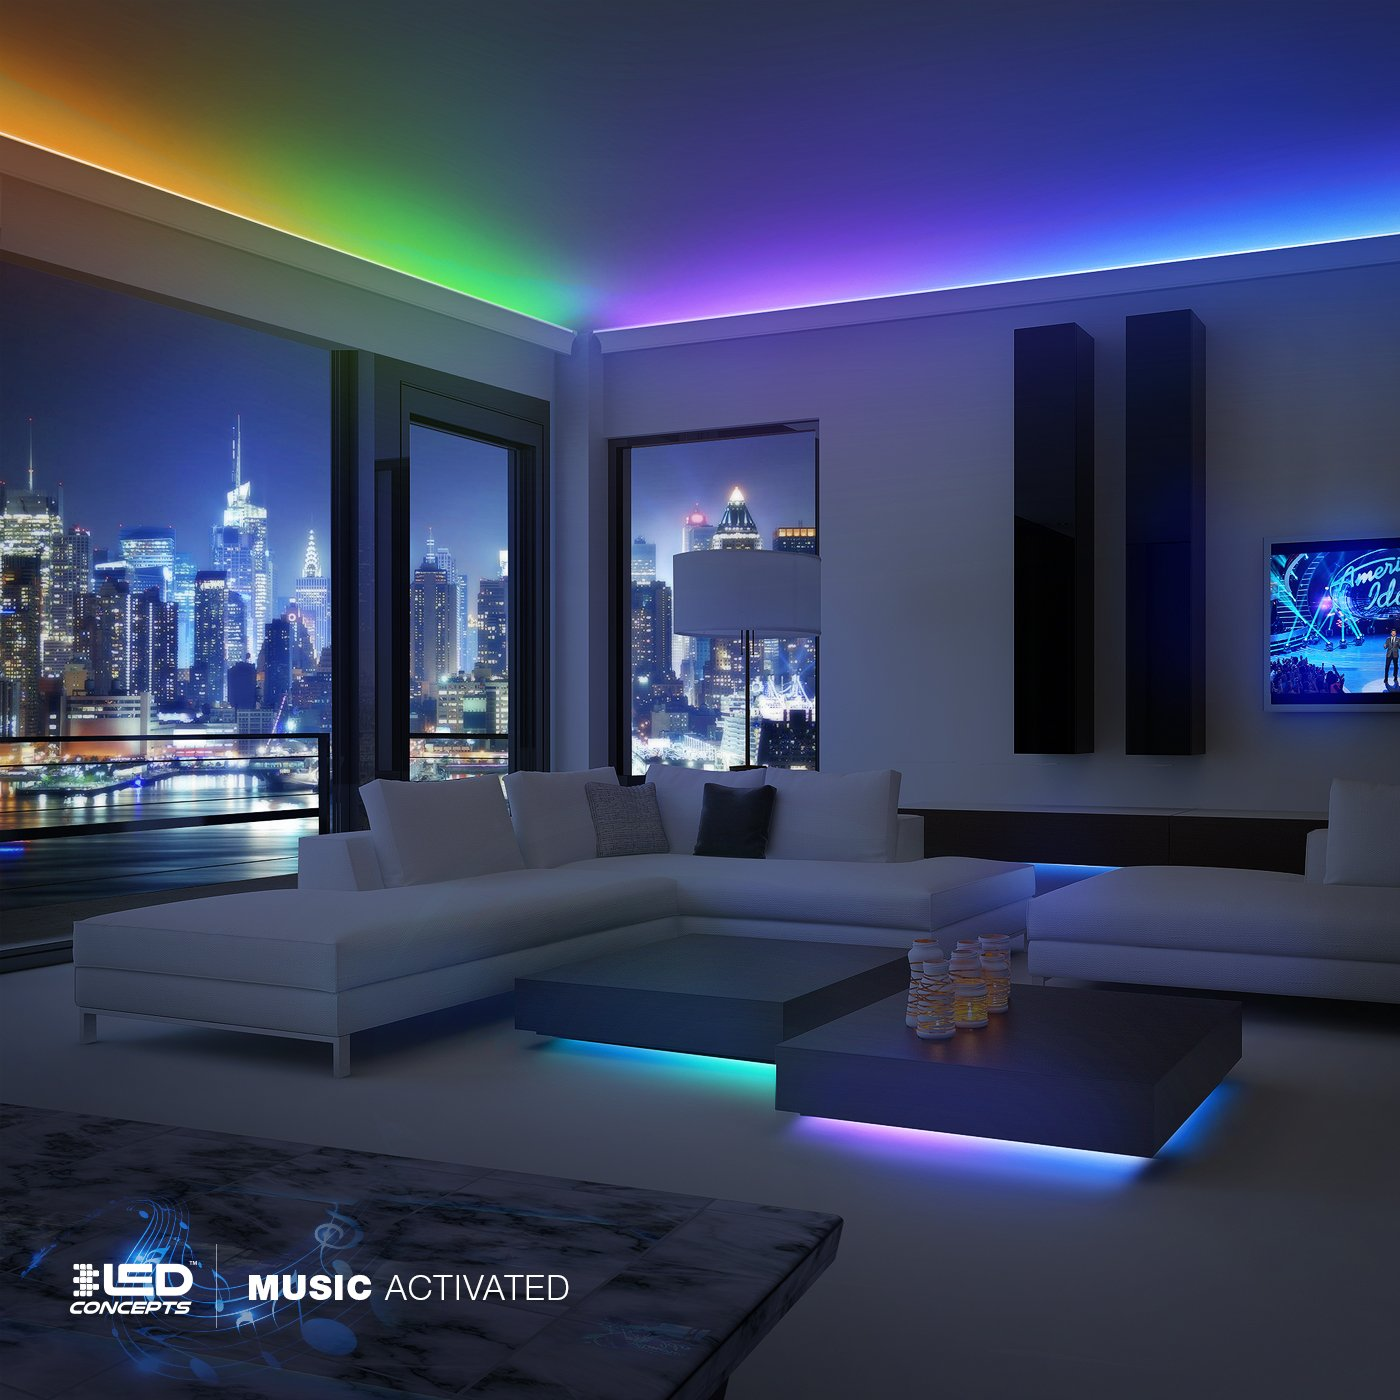 Amazon.com: LED Concepts Strip Lights Colored Led Rope Lights for ...